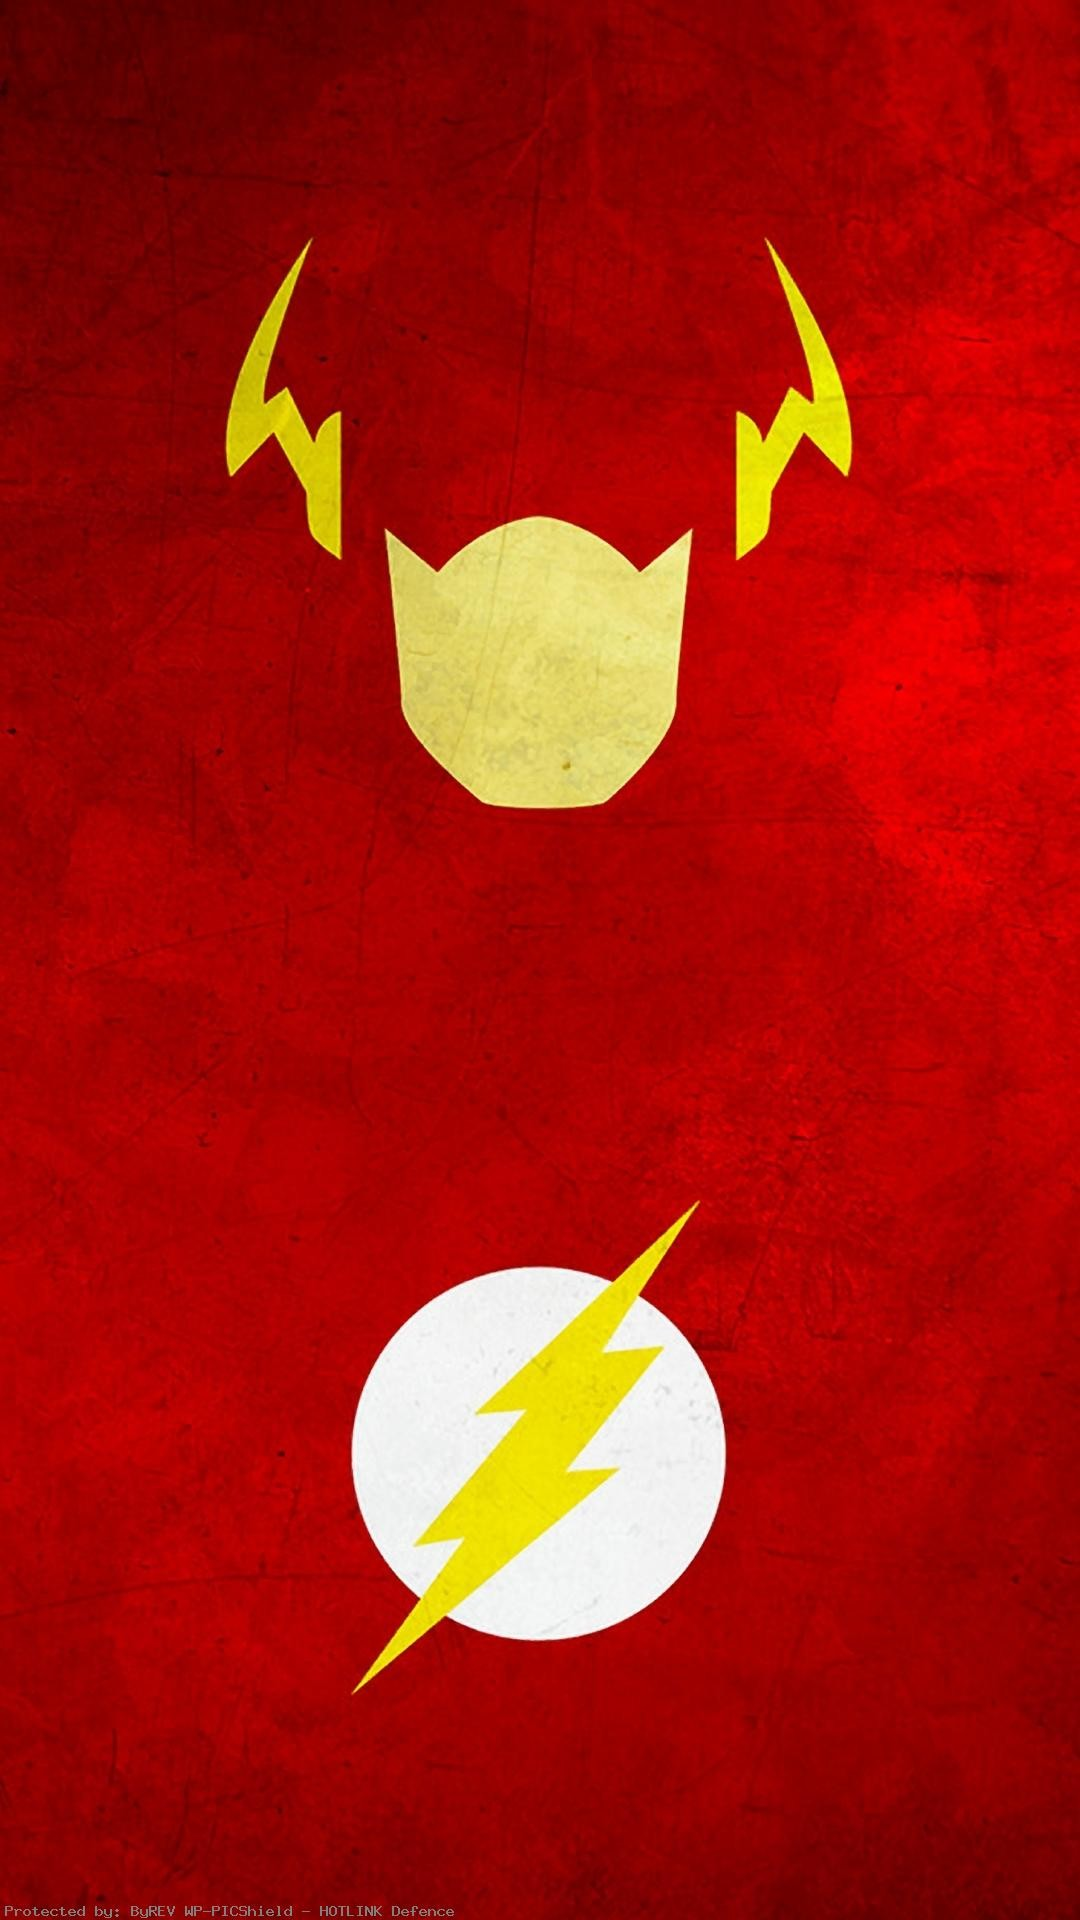 the flash comic wallpaper, flash dc wallpaper